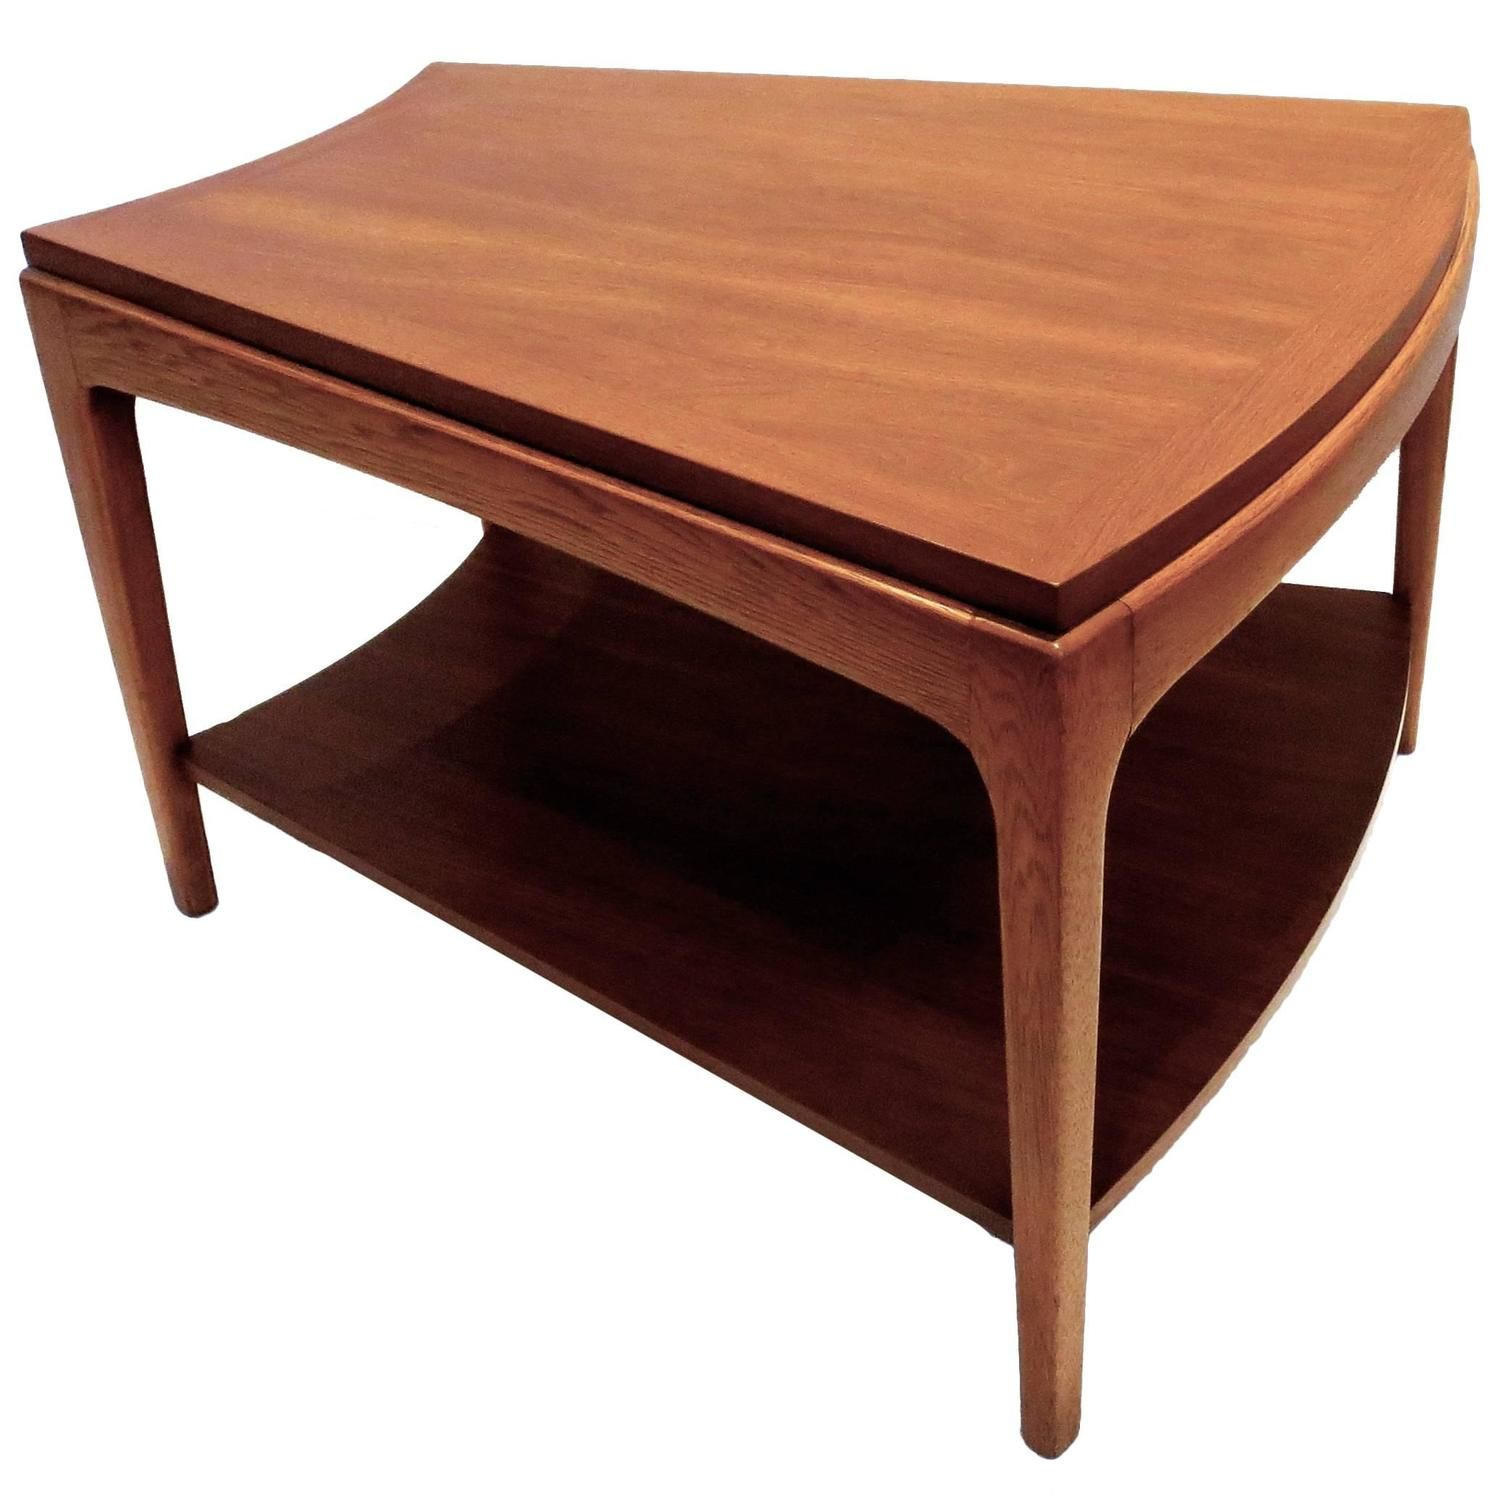 1950s American Modern Trapezoid Shape Cocktail End Table In Walnut 1stdibs Com Table End Tables Table Furniture